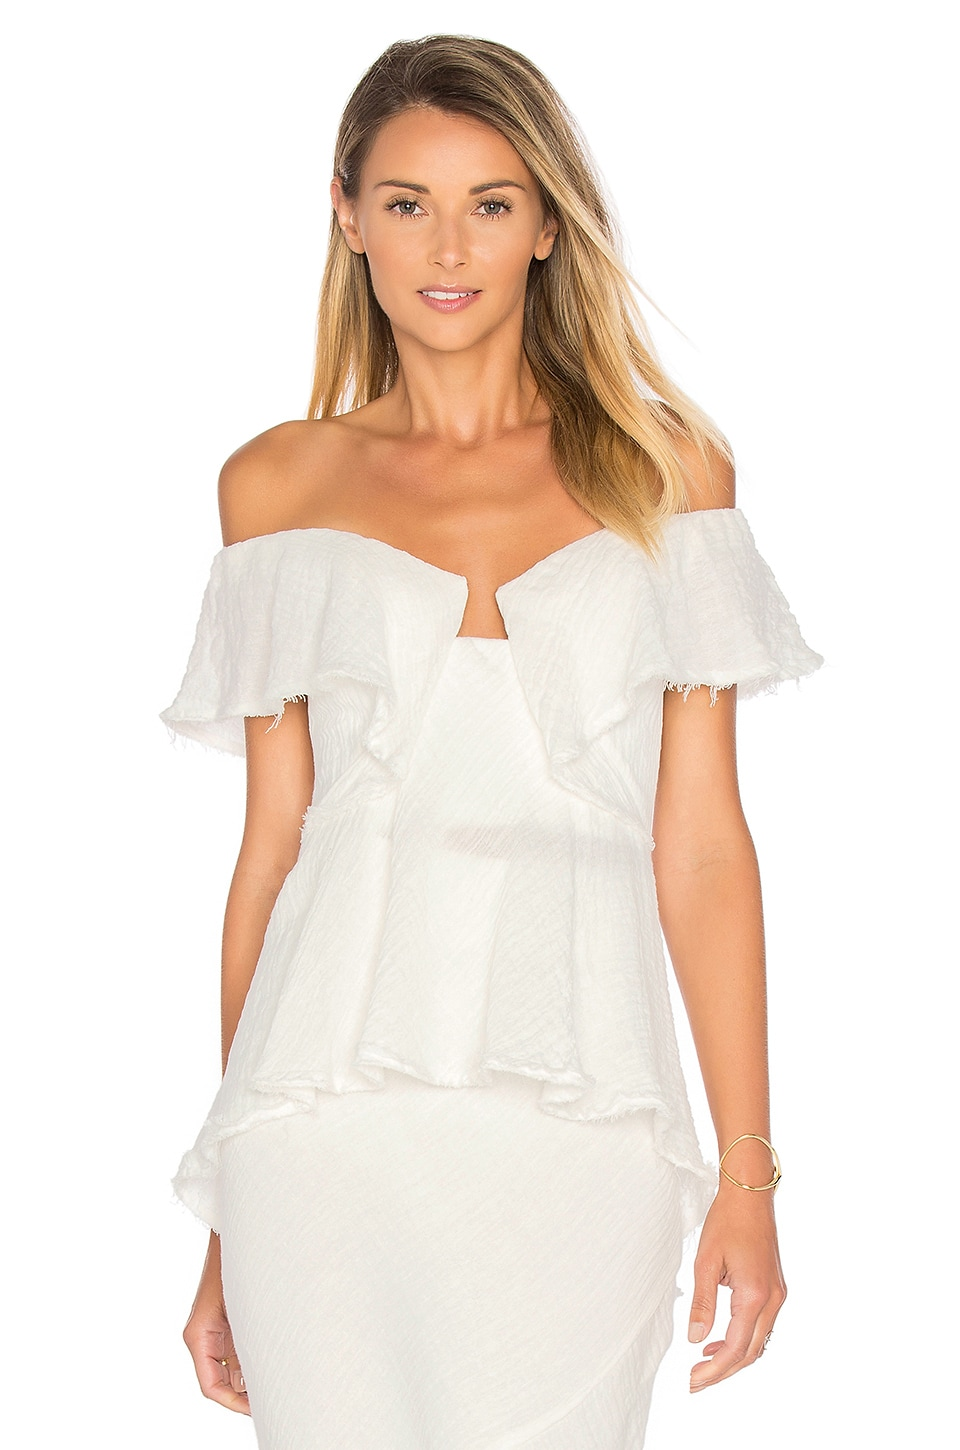 Strapless Flounce Top by KITX